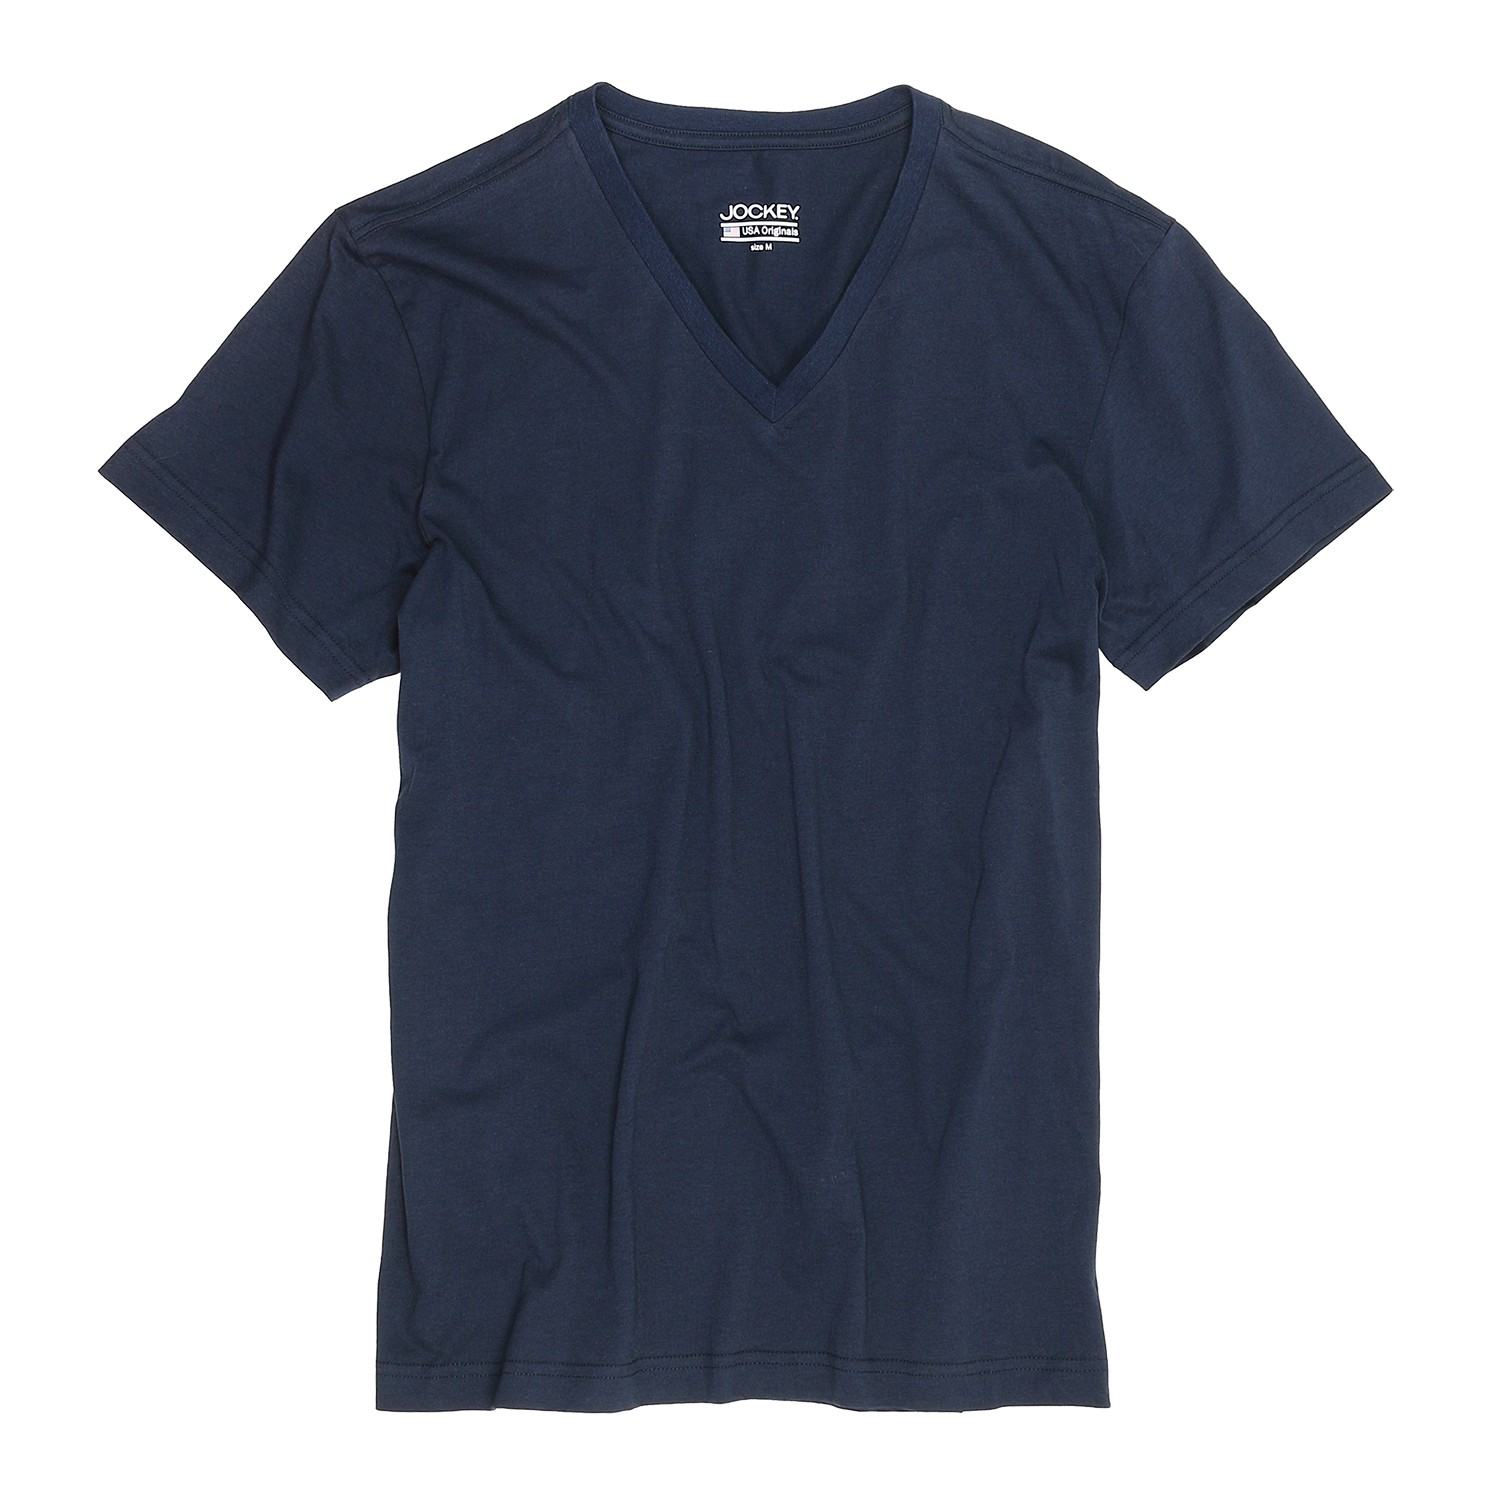 Detail Image to T-shirt with v-neck from Jockey in oversize until 6XL, blue